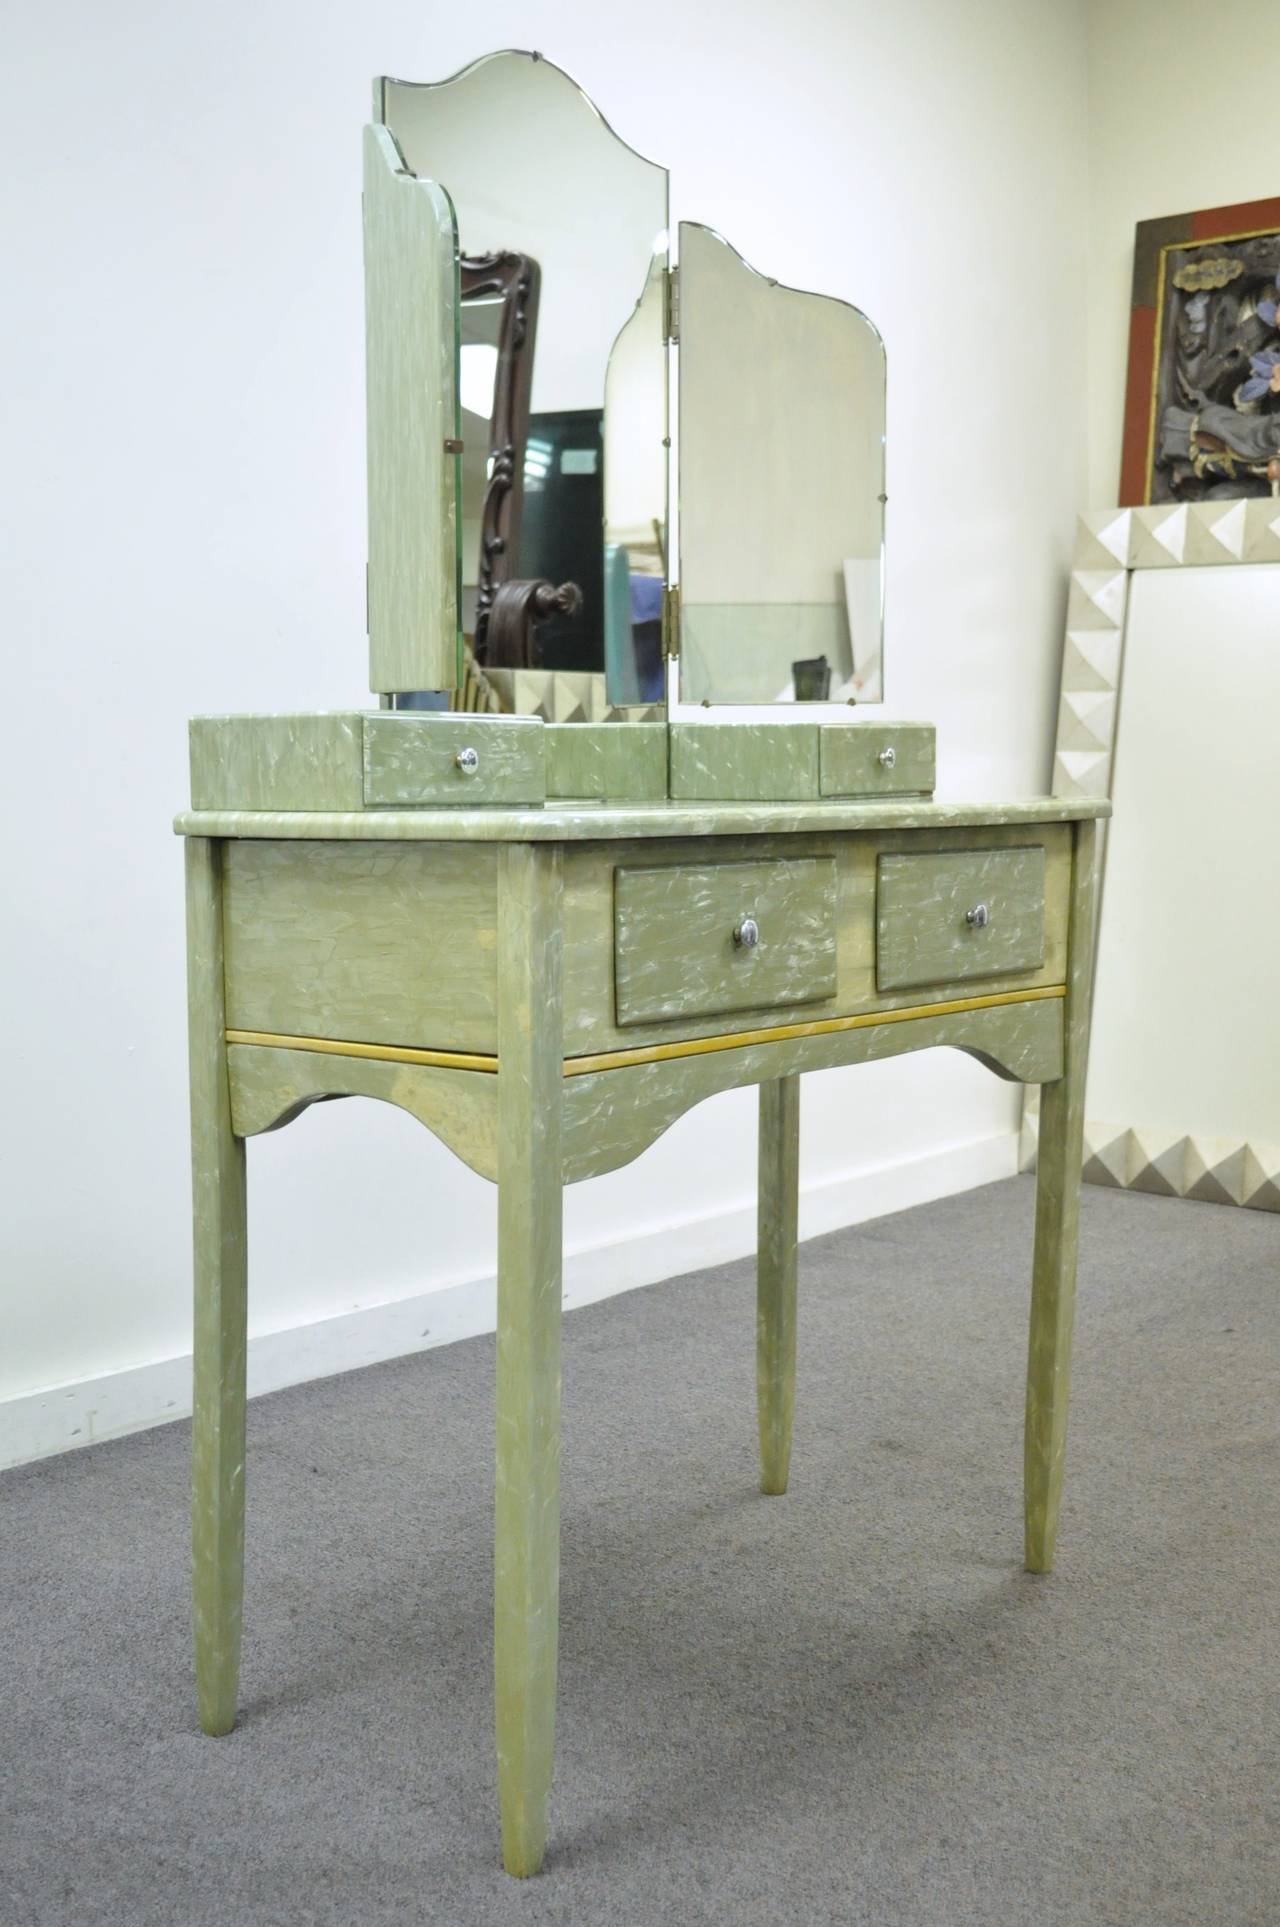 Extremely unique and interesting vanity with matching tri-fold mirror and vanity bench comprised of real celluloid over wood. This rare set has a very striking appearance, thanks to the iridescent tones of the light green celluloid, and the simple